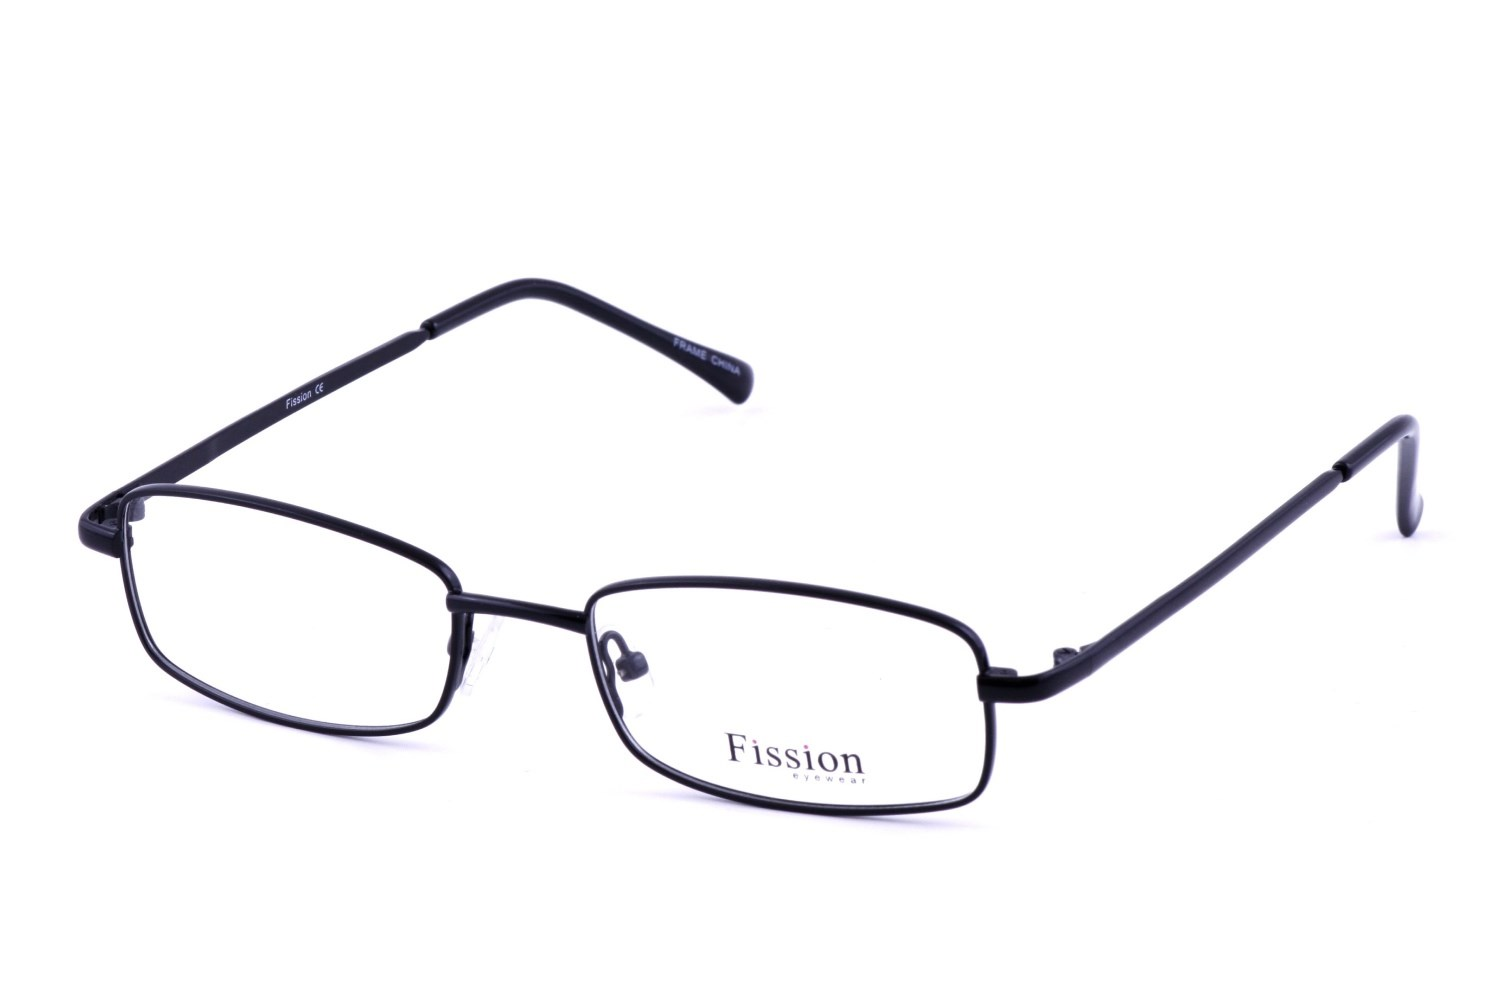 Fission 007 Prescription Eyeglasses Frames